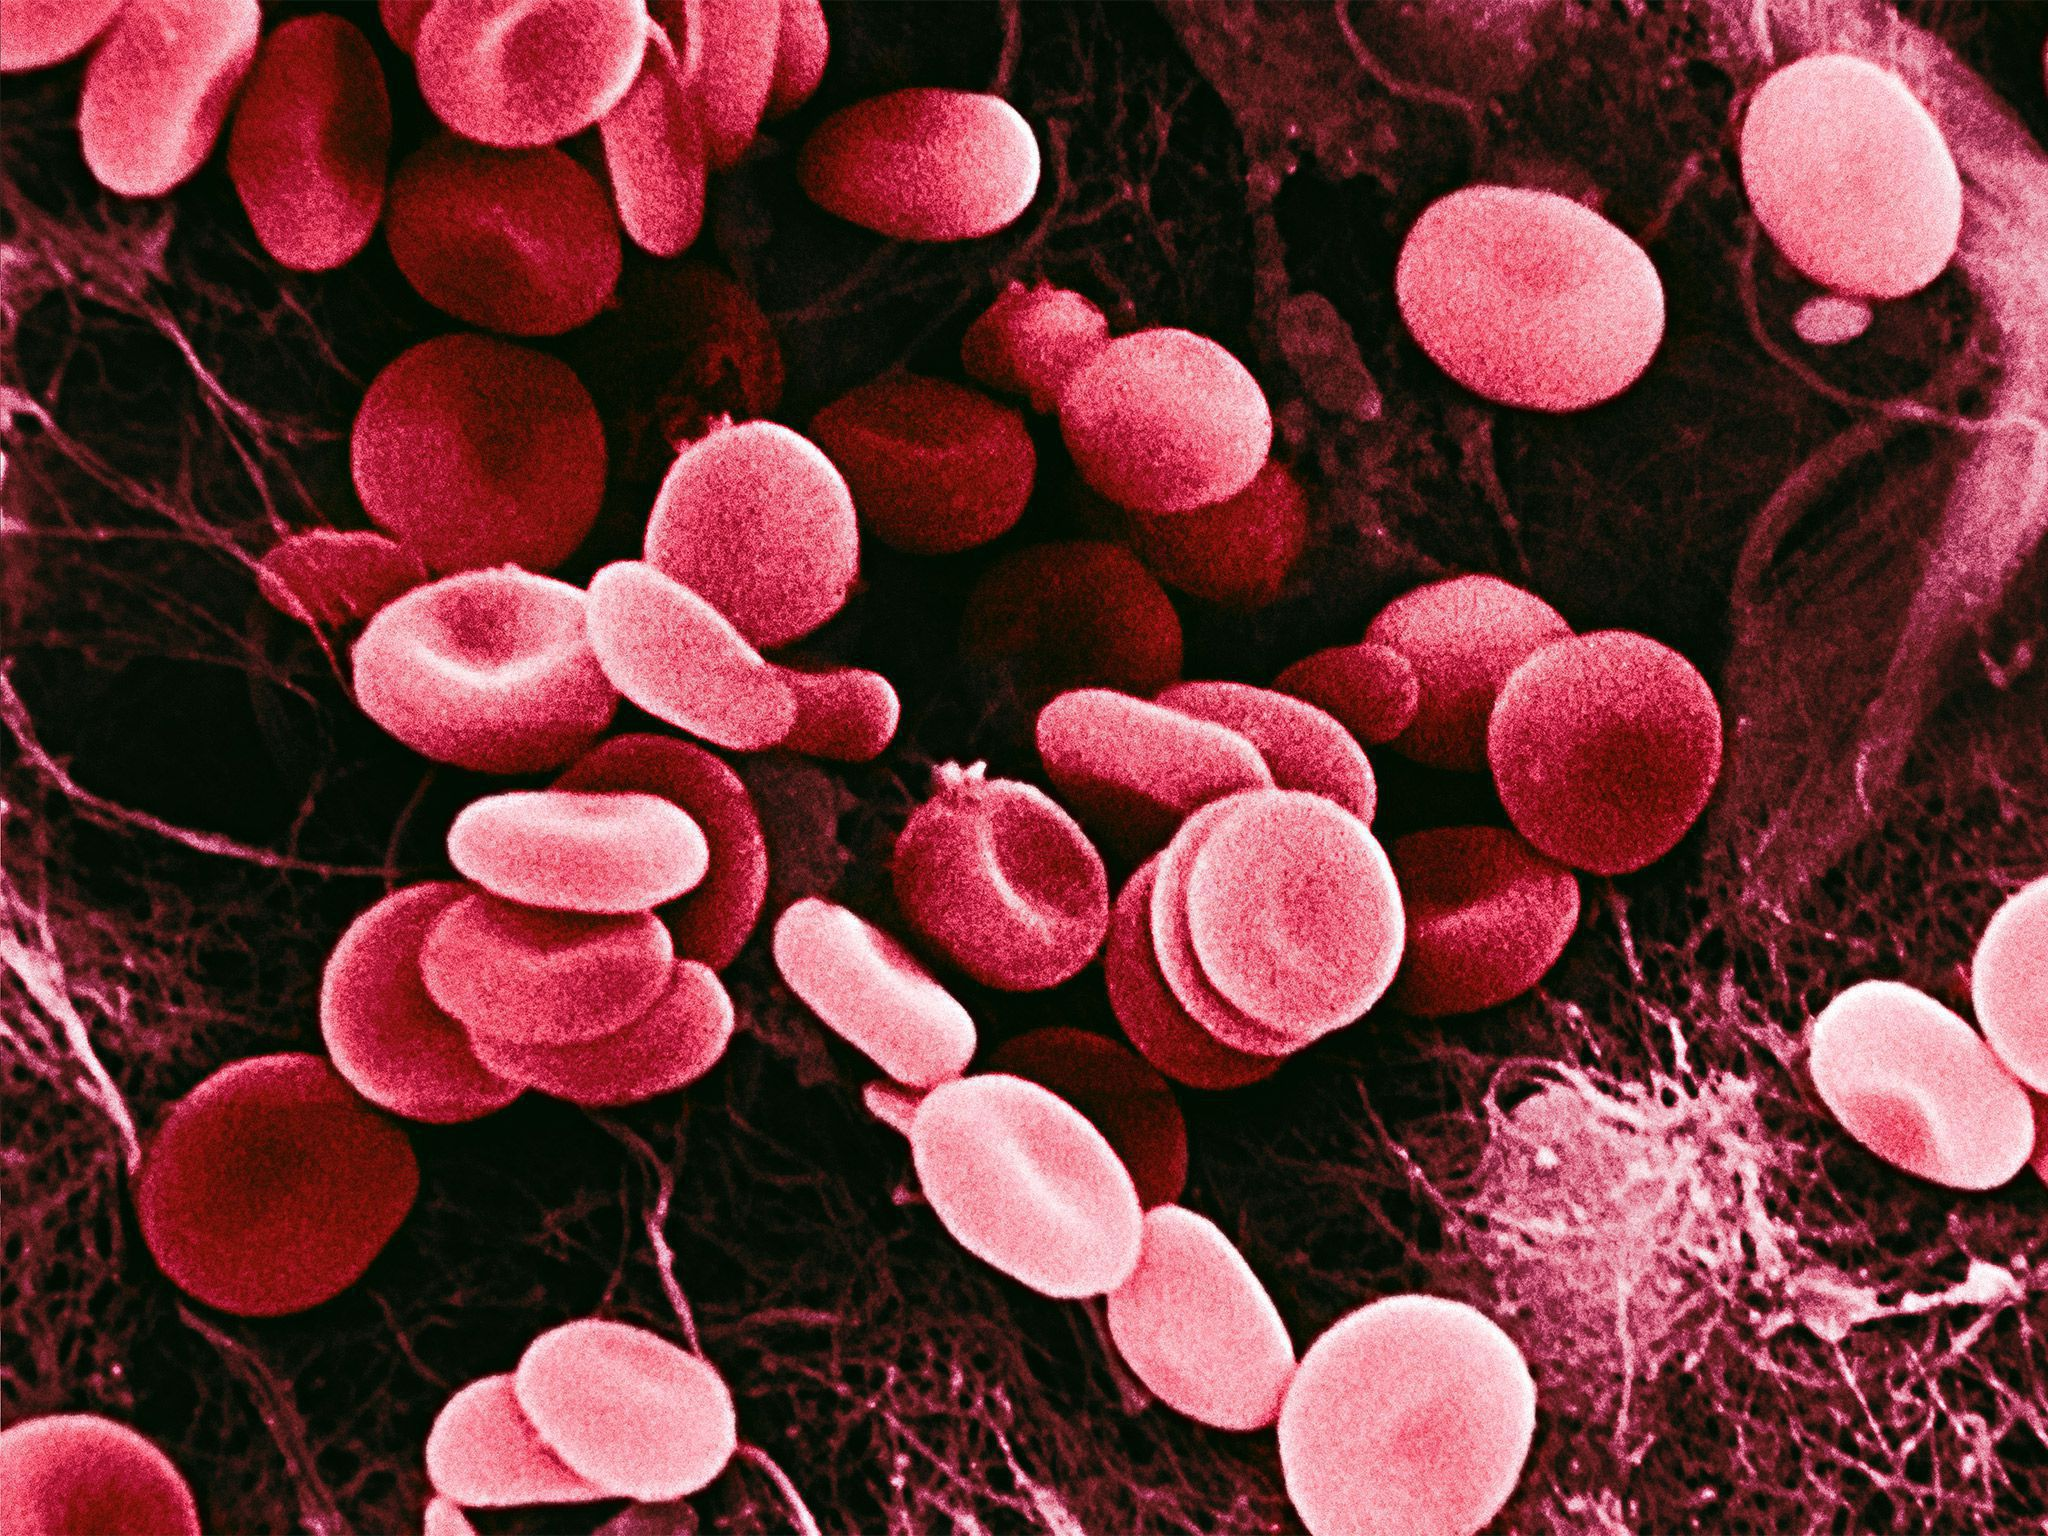 Blood Cells HD Wallpaper